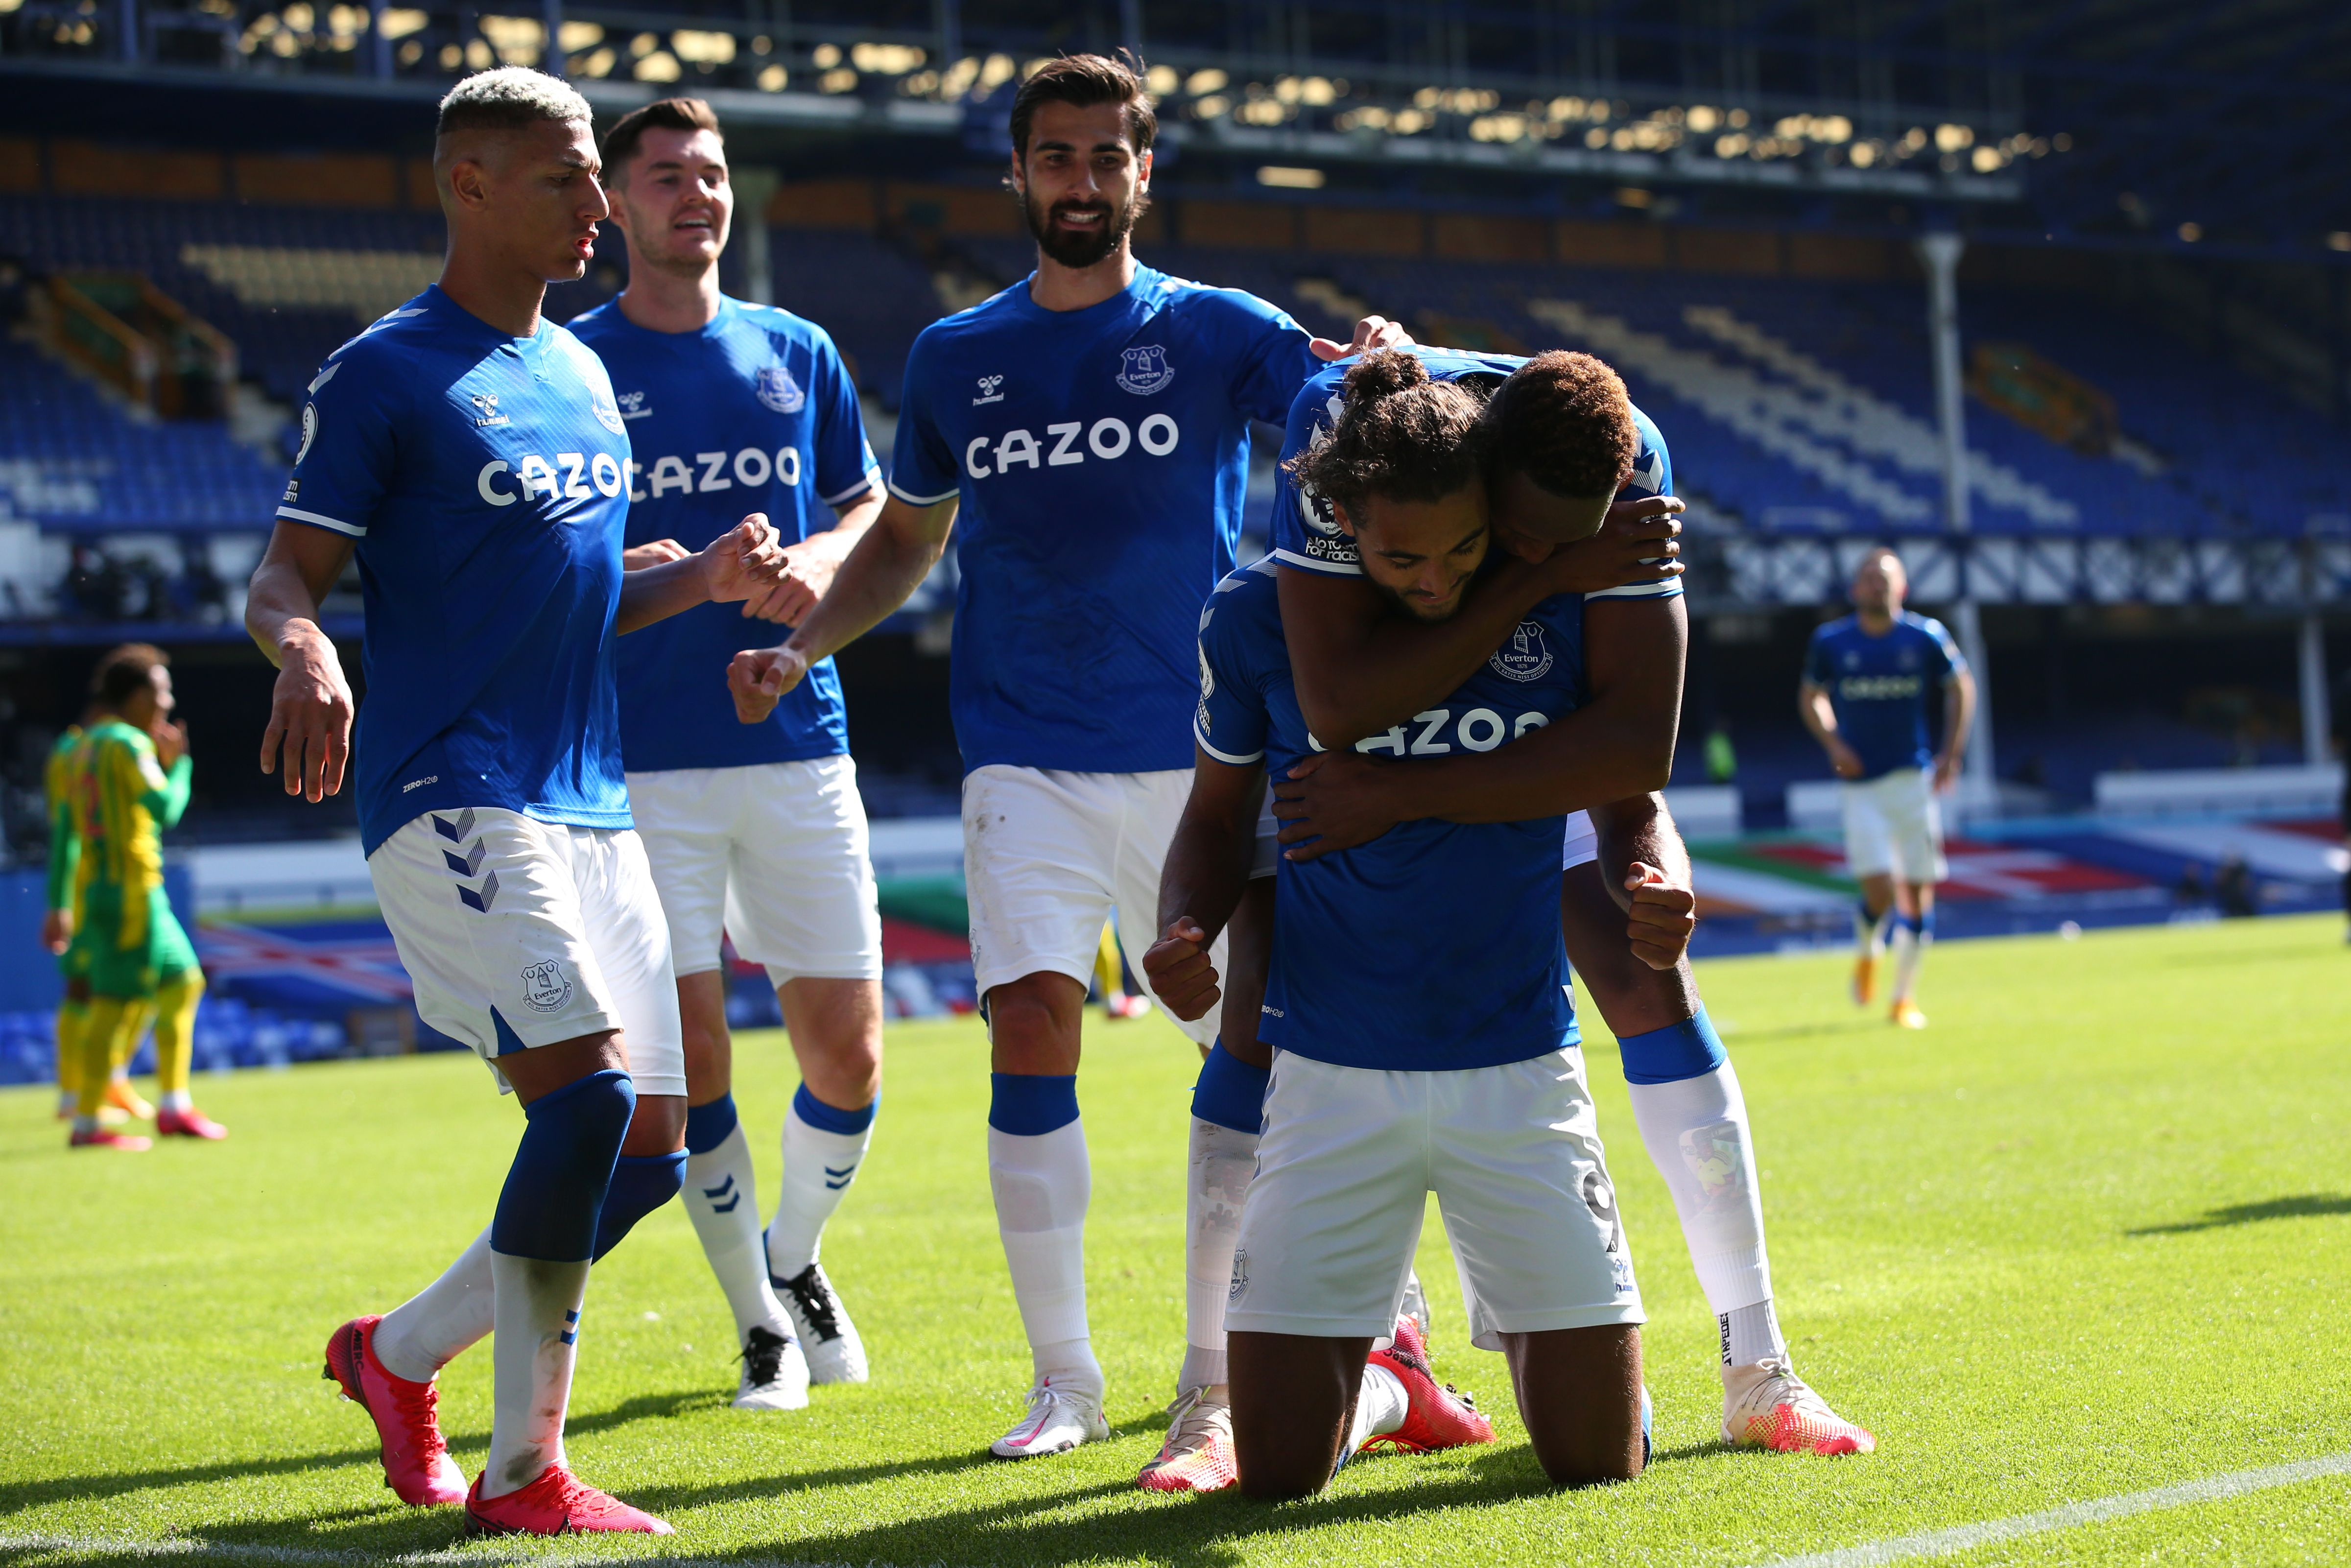 Everton players celebrate with hat-trick hero Dominic Calvert-Lewin